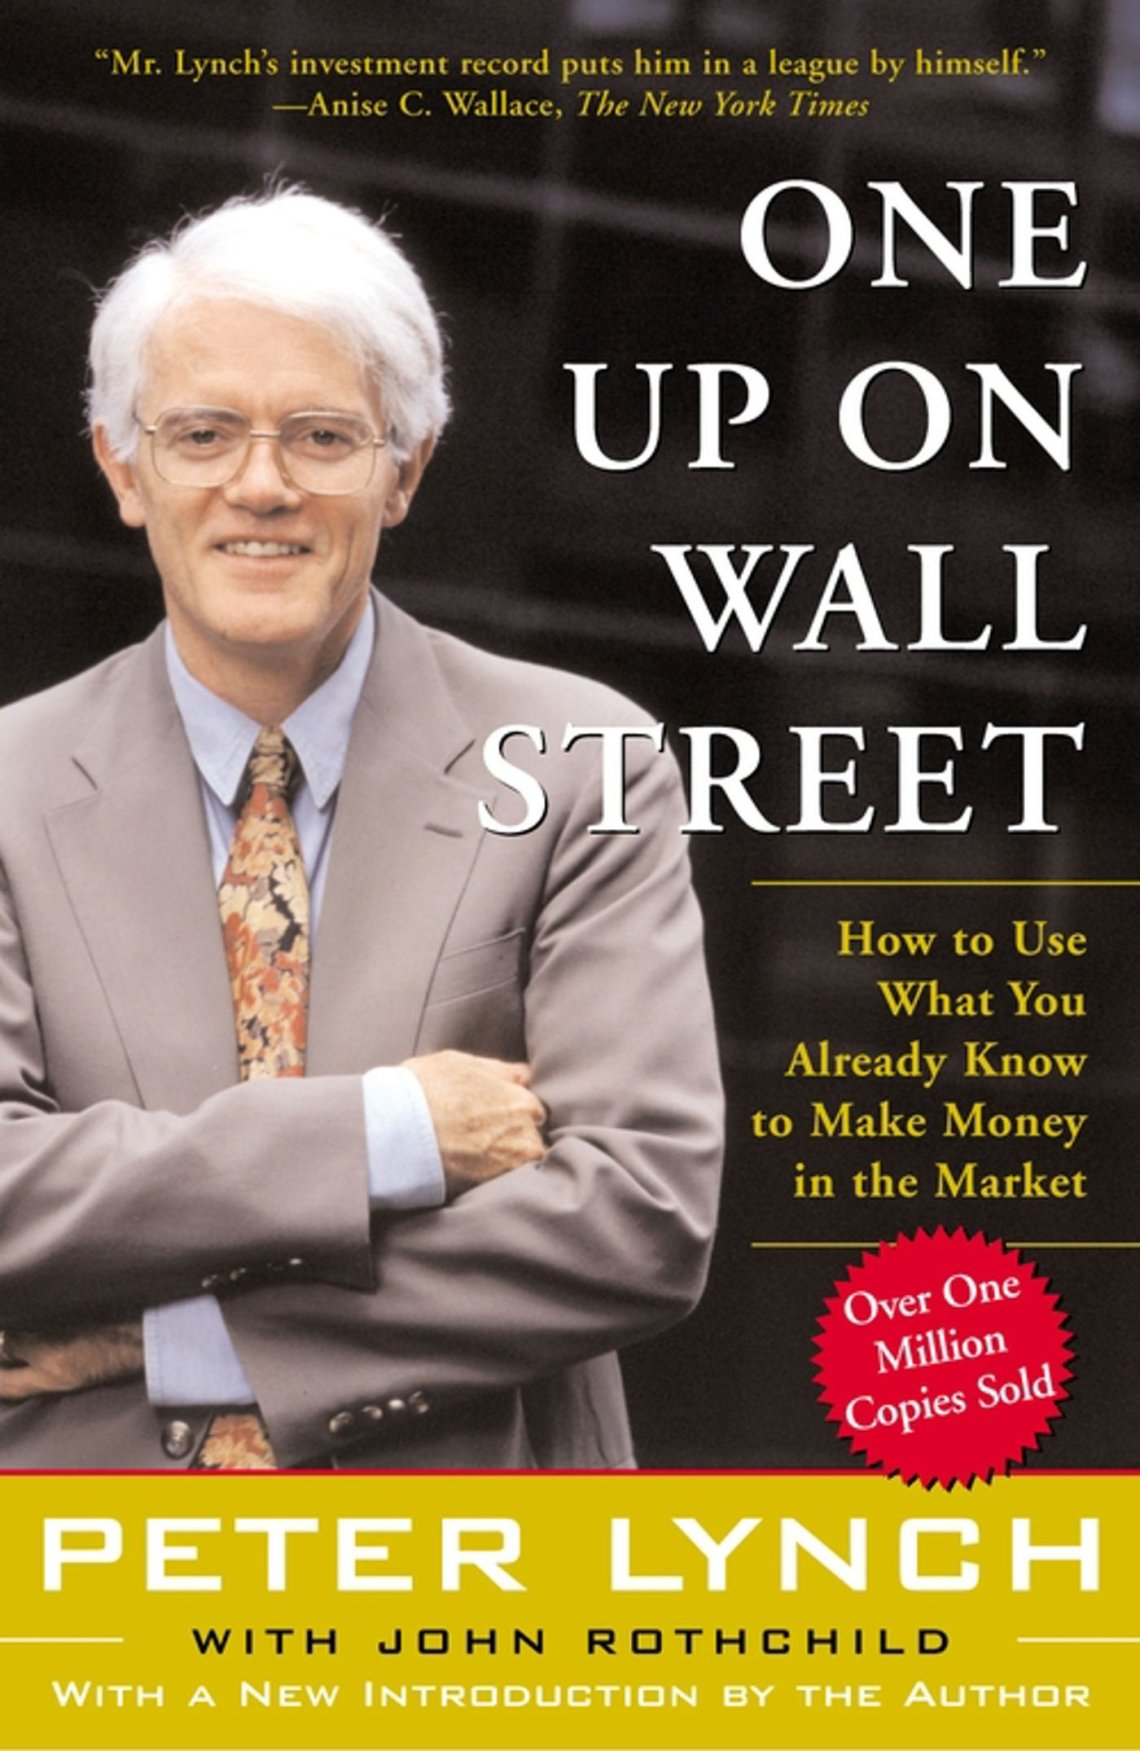 One Up On Wall Street one of investing books